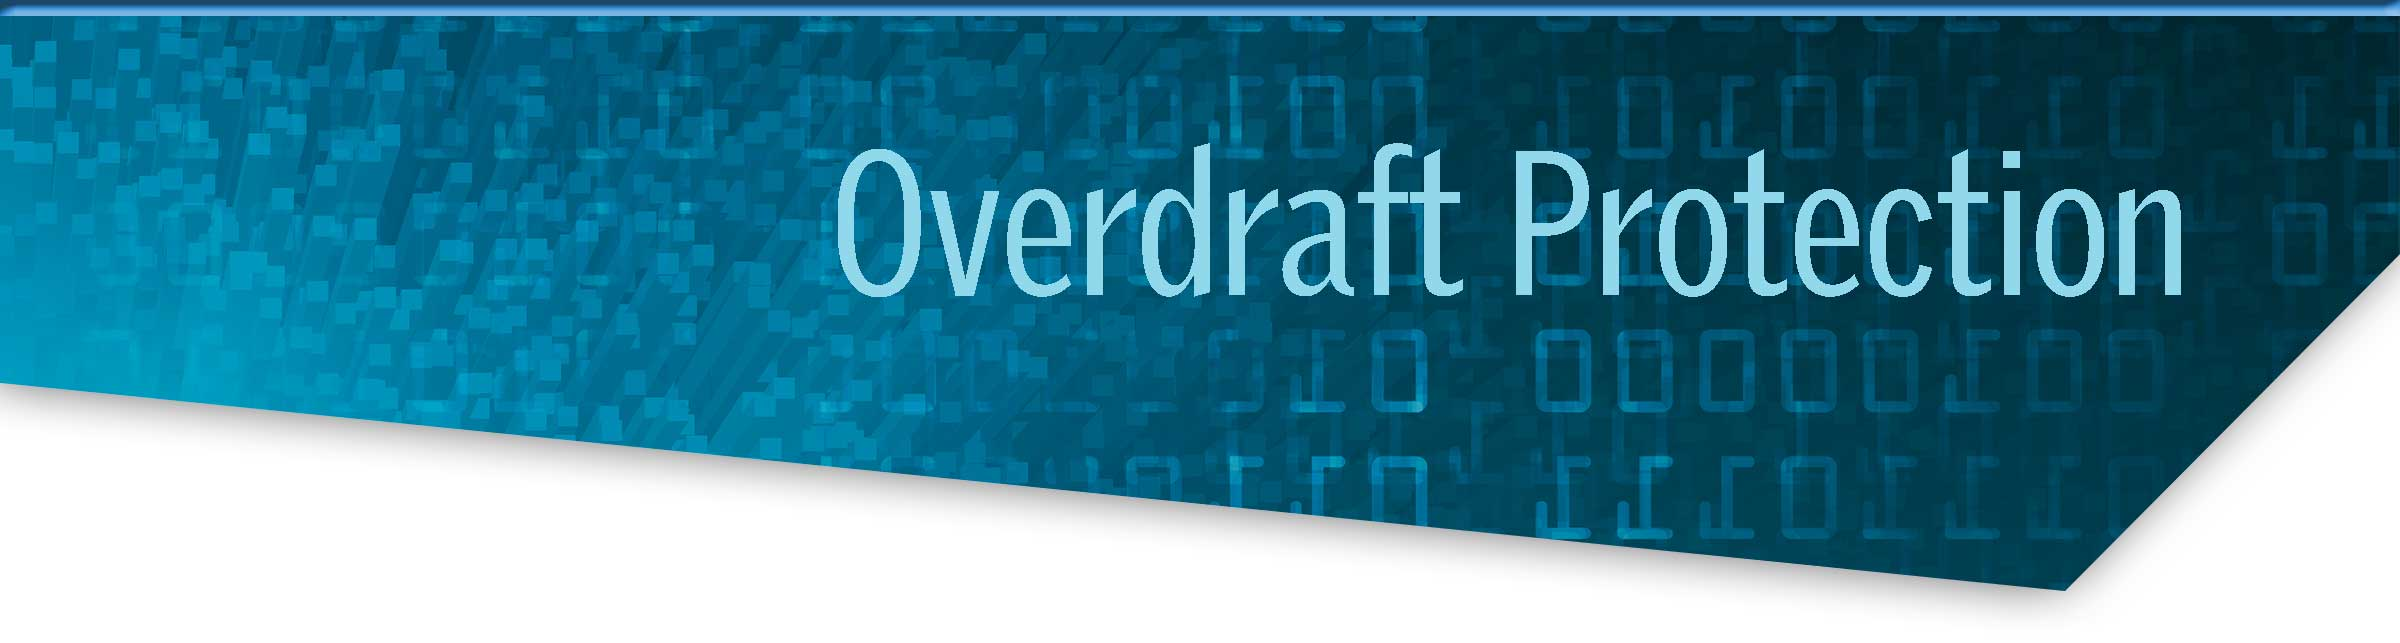 Overdraft Protection on a blue computer screen